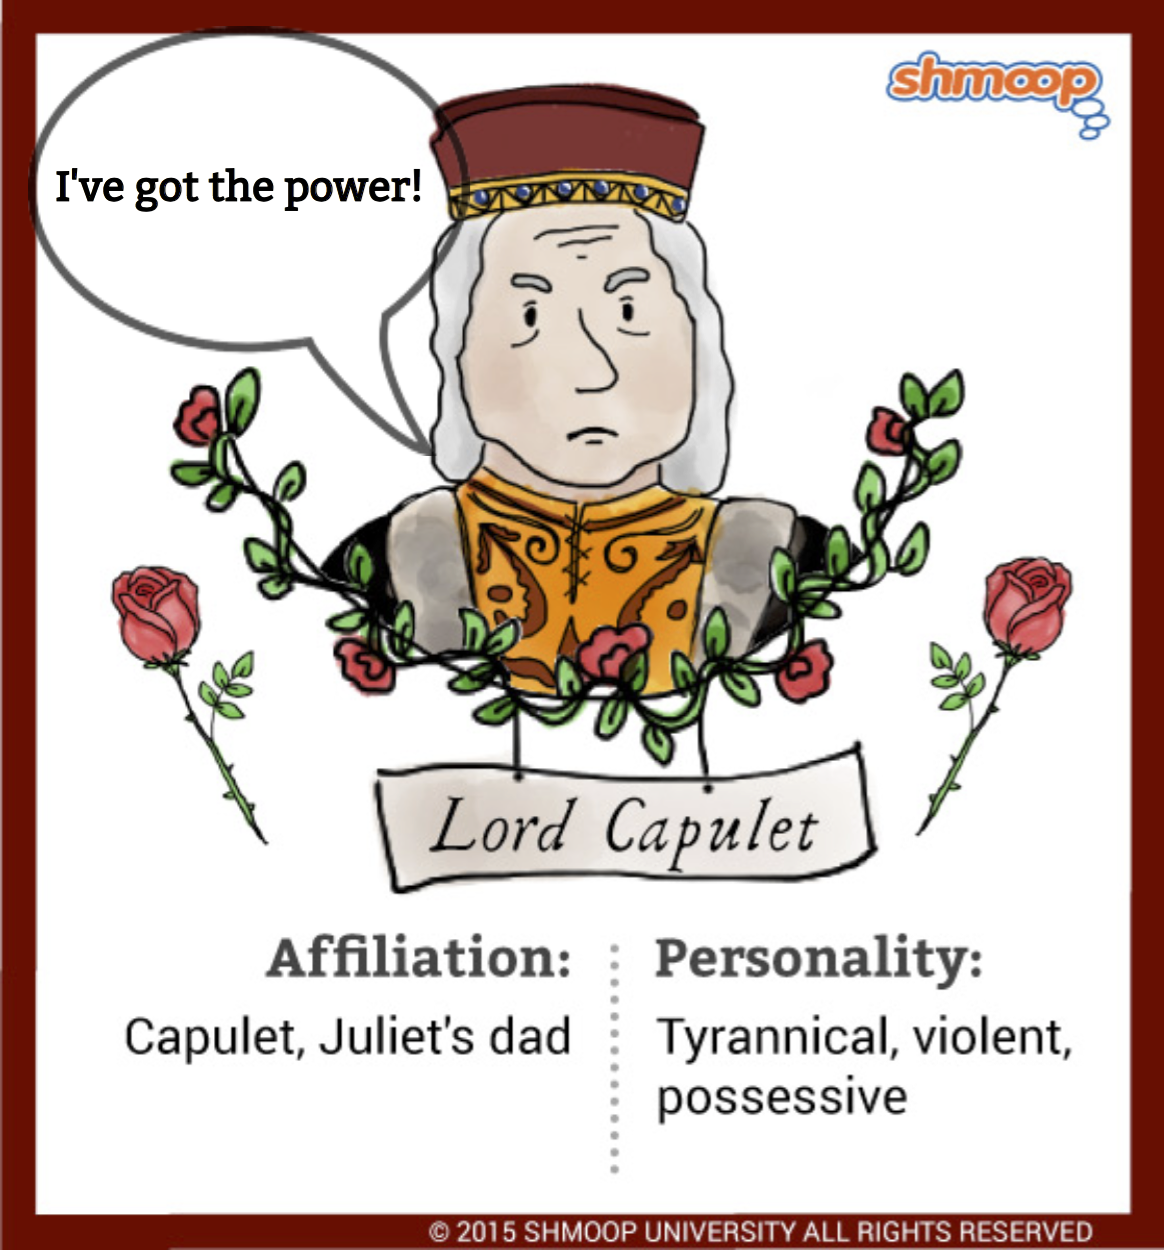 lady capulet analysis essay Everything you ever wanted to know about lord capulet in romeo and juliet, written by masters of this stuff just for you character analysis (click the character infographic to download) lord capulet about that wife, anyway: lady capulet is probably much younger than he.